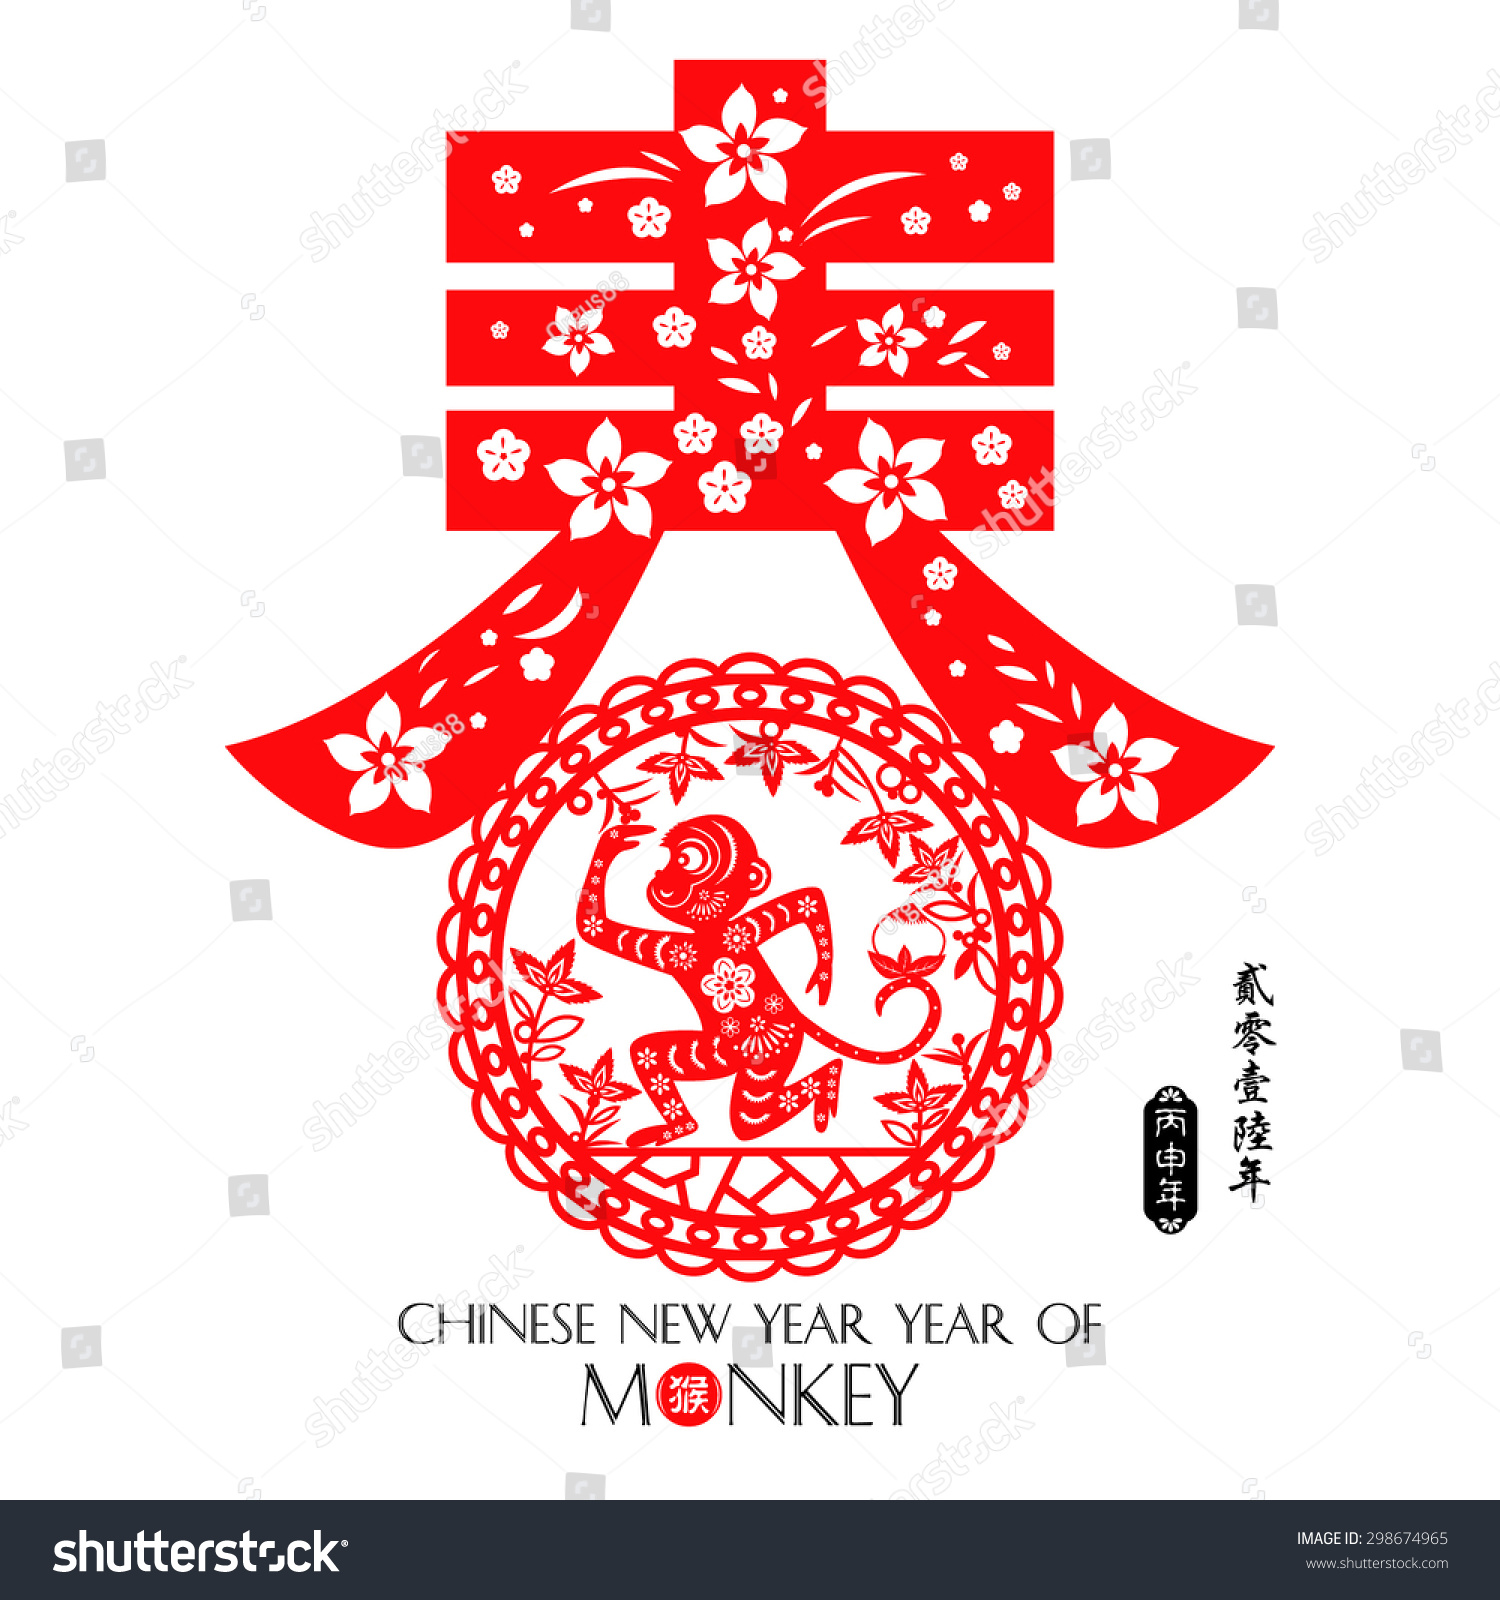 year-of-monkey-made-by-traditional-chinese-paper-cut-arts-monkey-year ...